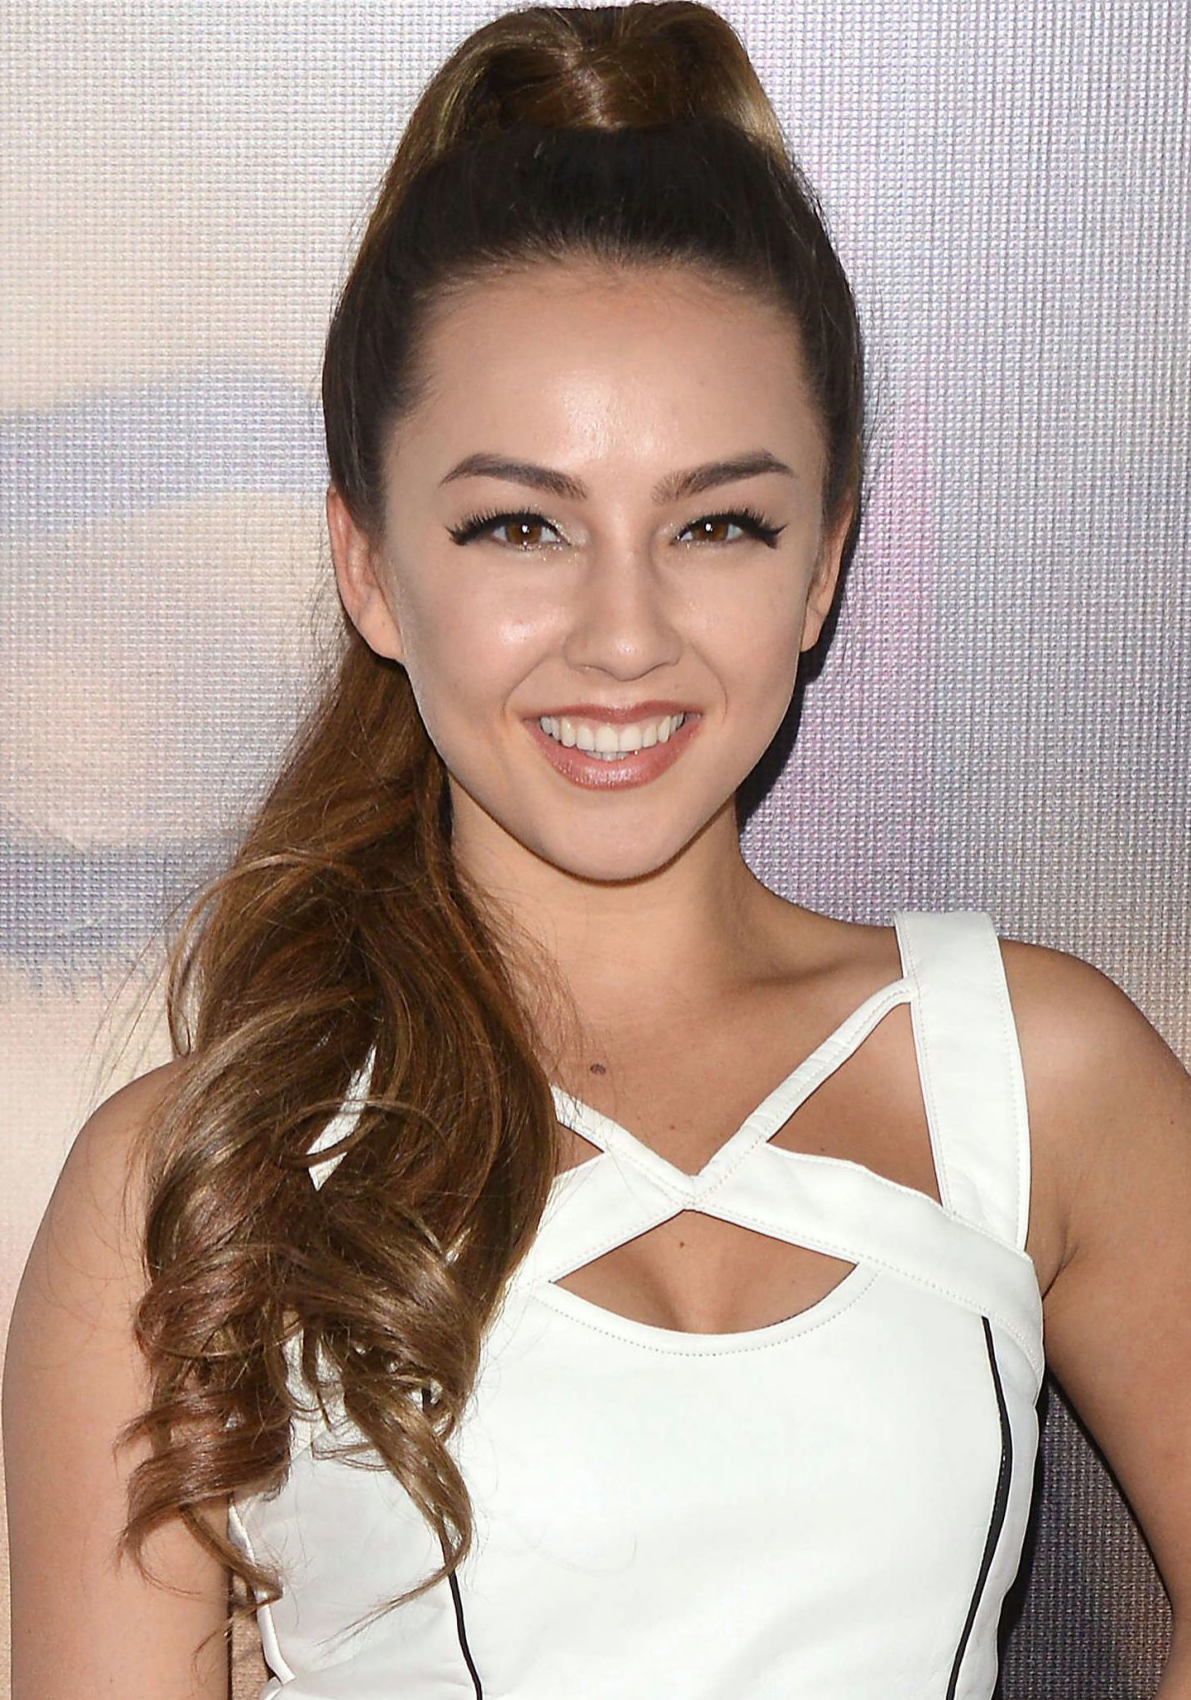 aboutnicigiri: Lexi Ainsworth